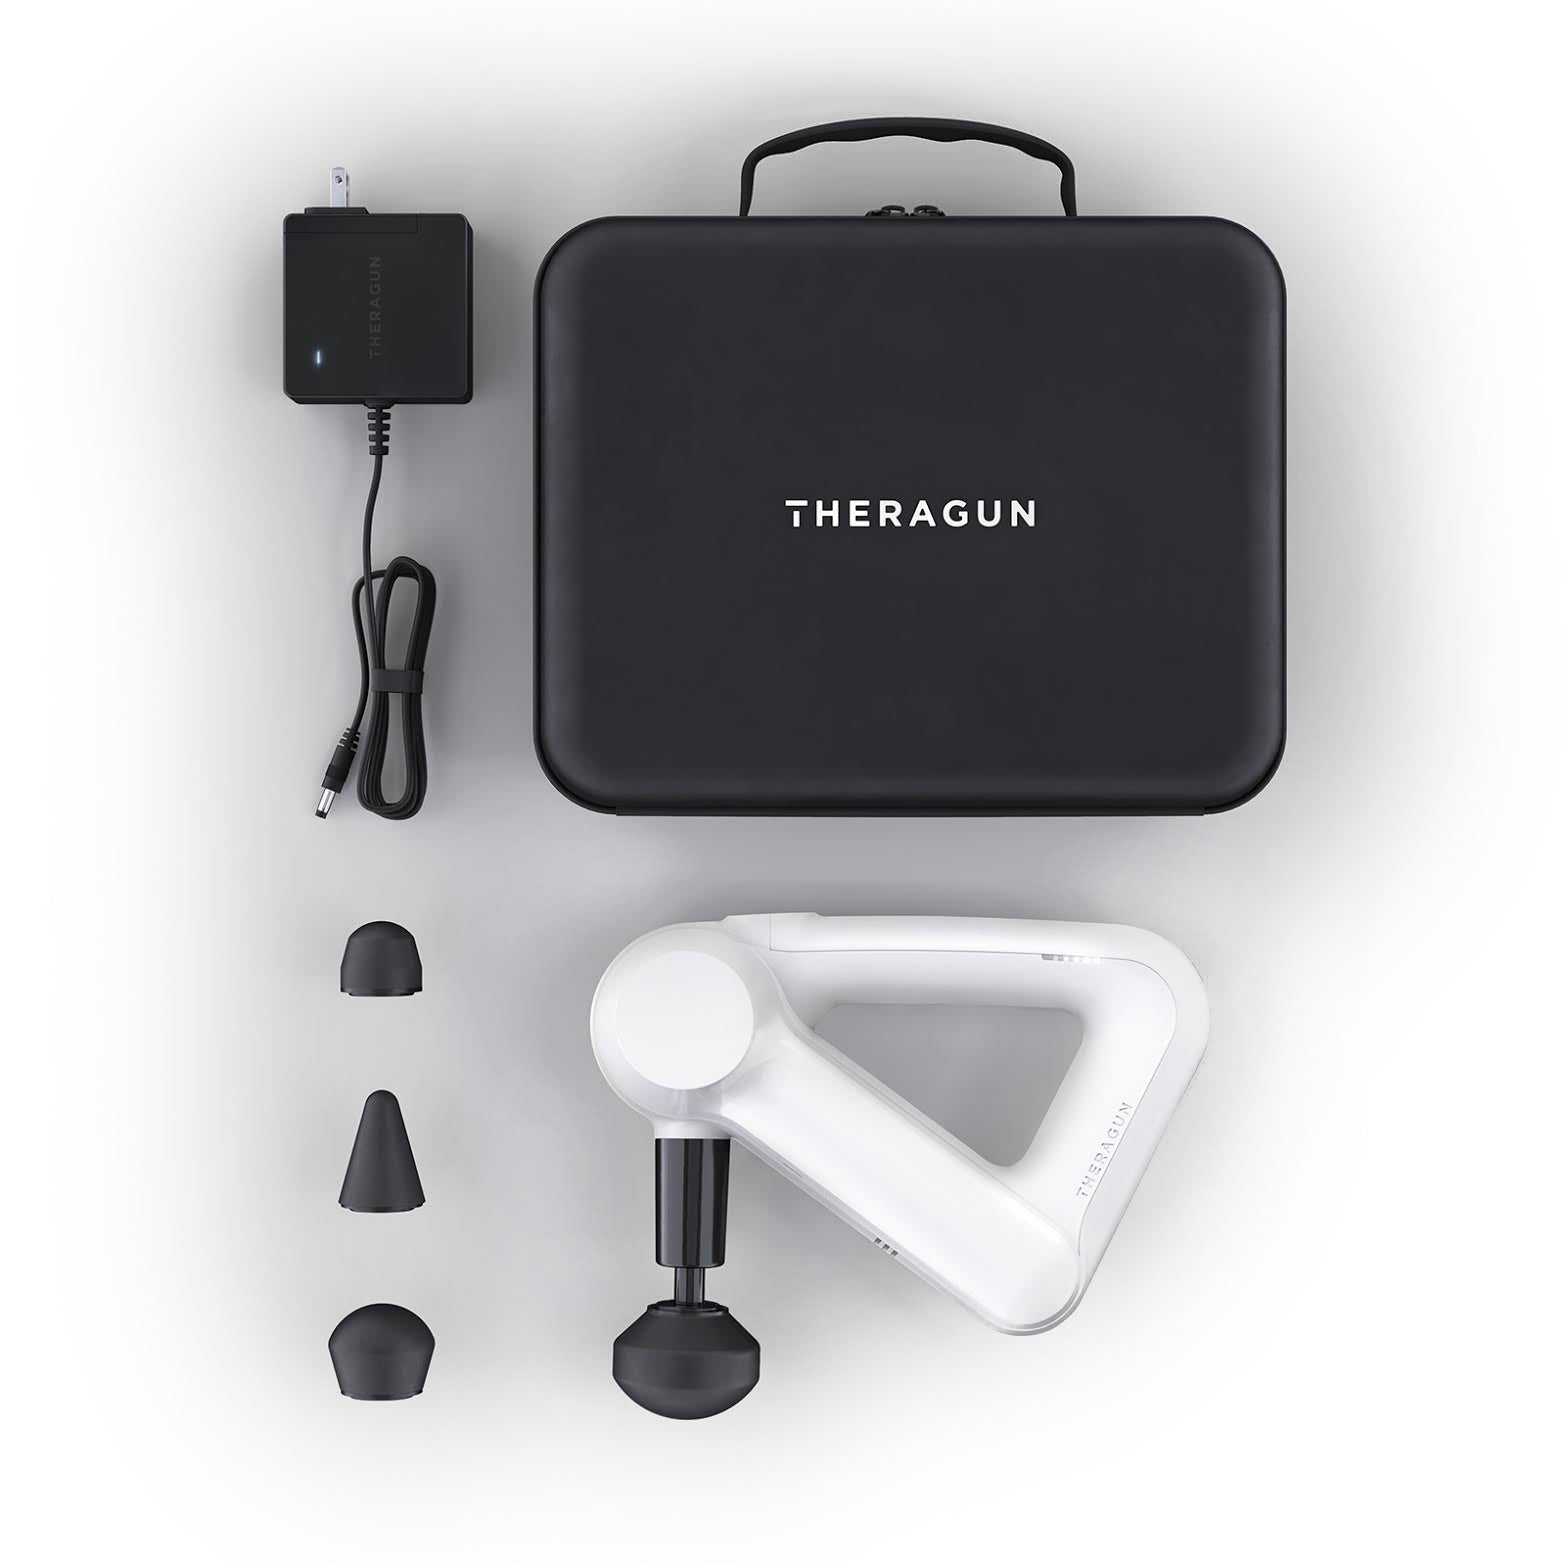 Theragun G3<br><h6>Accelerate recovery after an intense workout with this Theragun G3 percussion massager.  This premium percussive therapy device delivers a powerful deep muscle treatment that increases muscle activation, relieves soreness, and helps treat pain naturally.</h6>